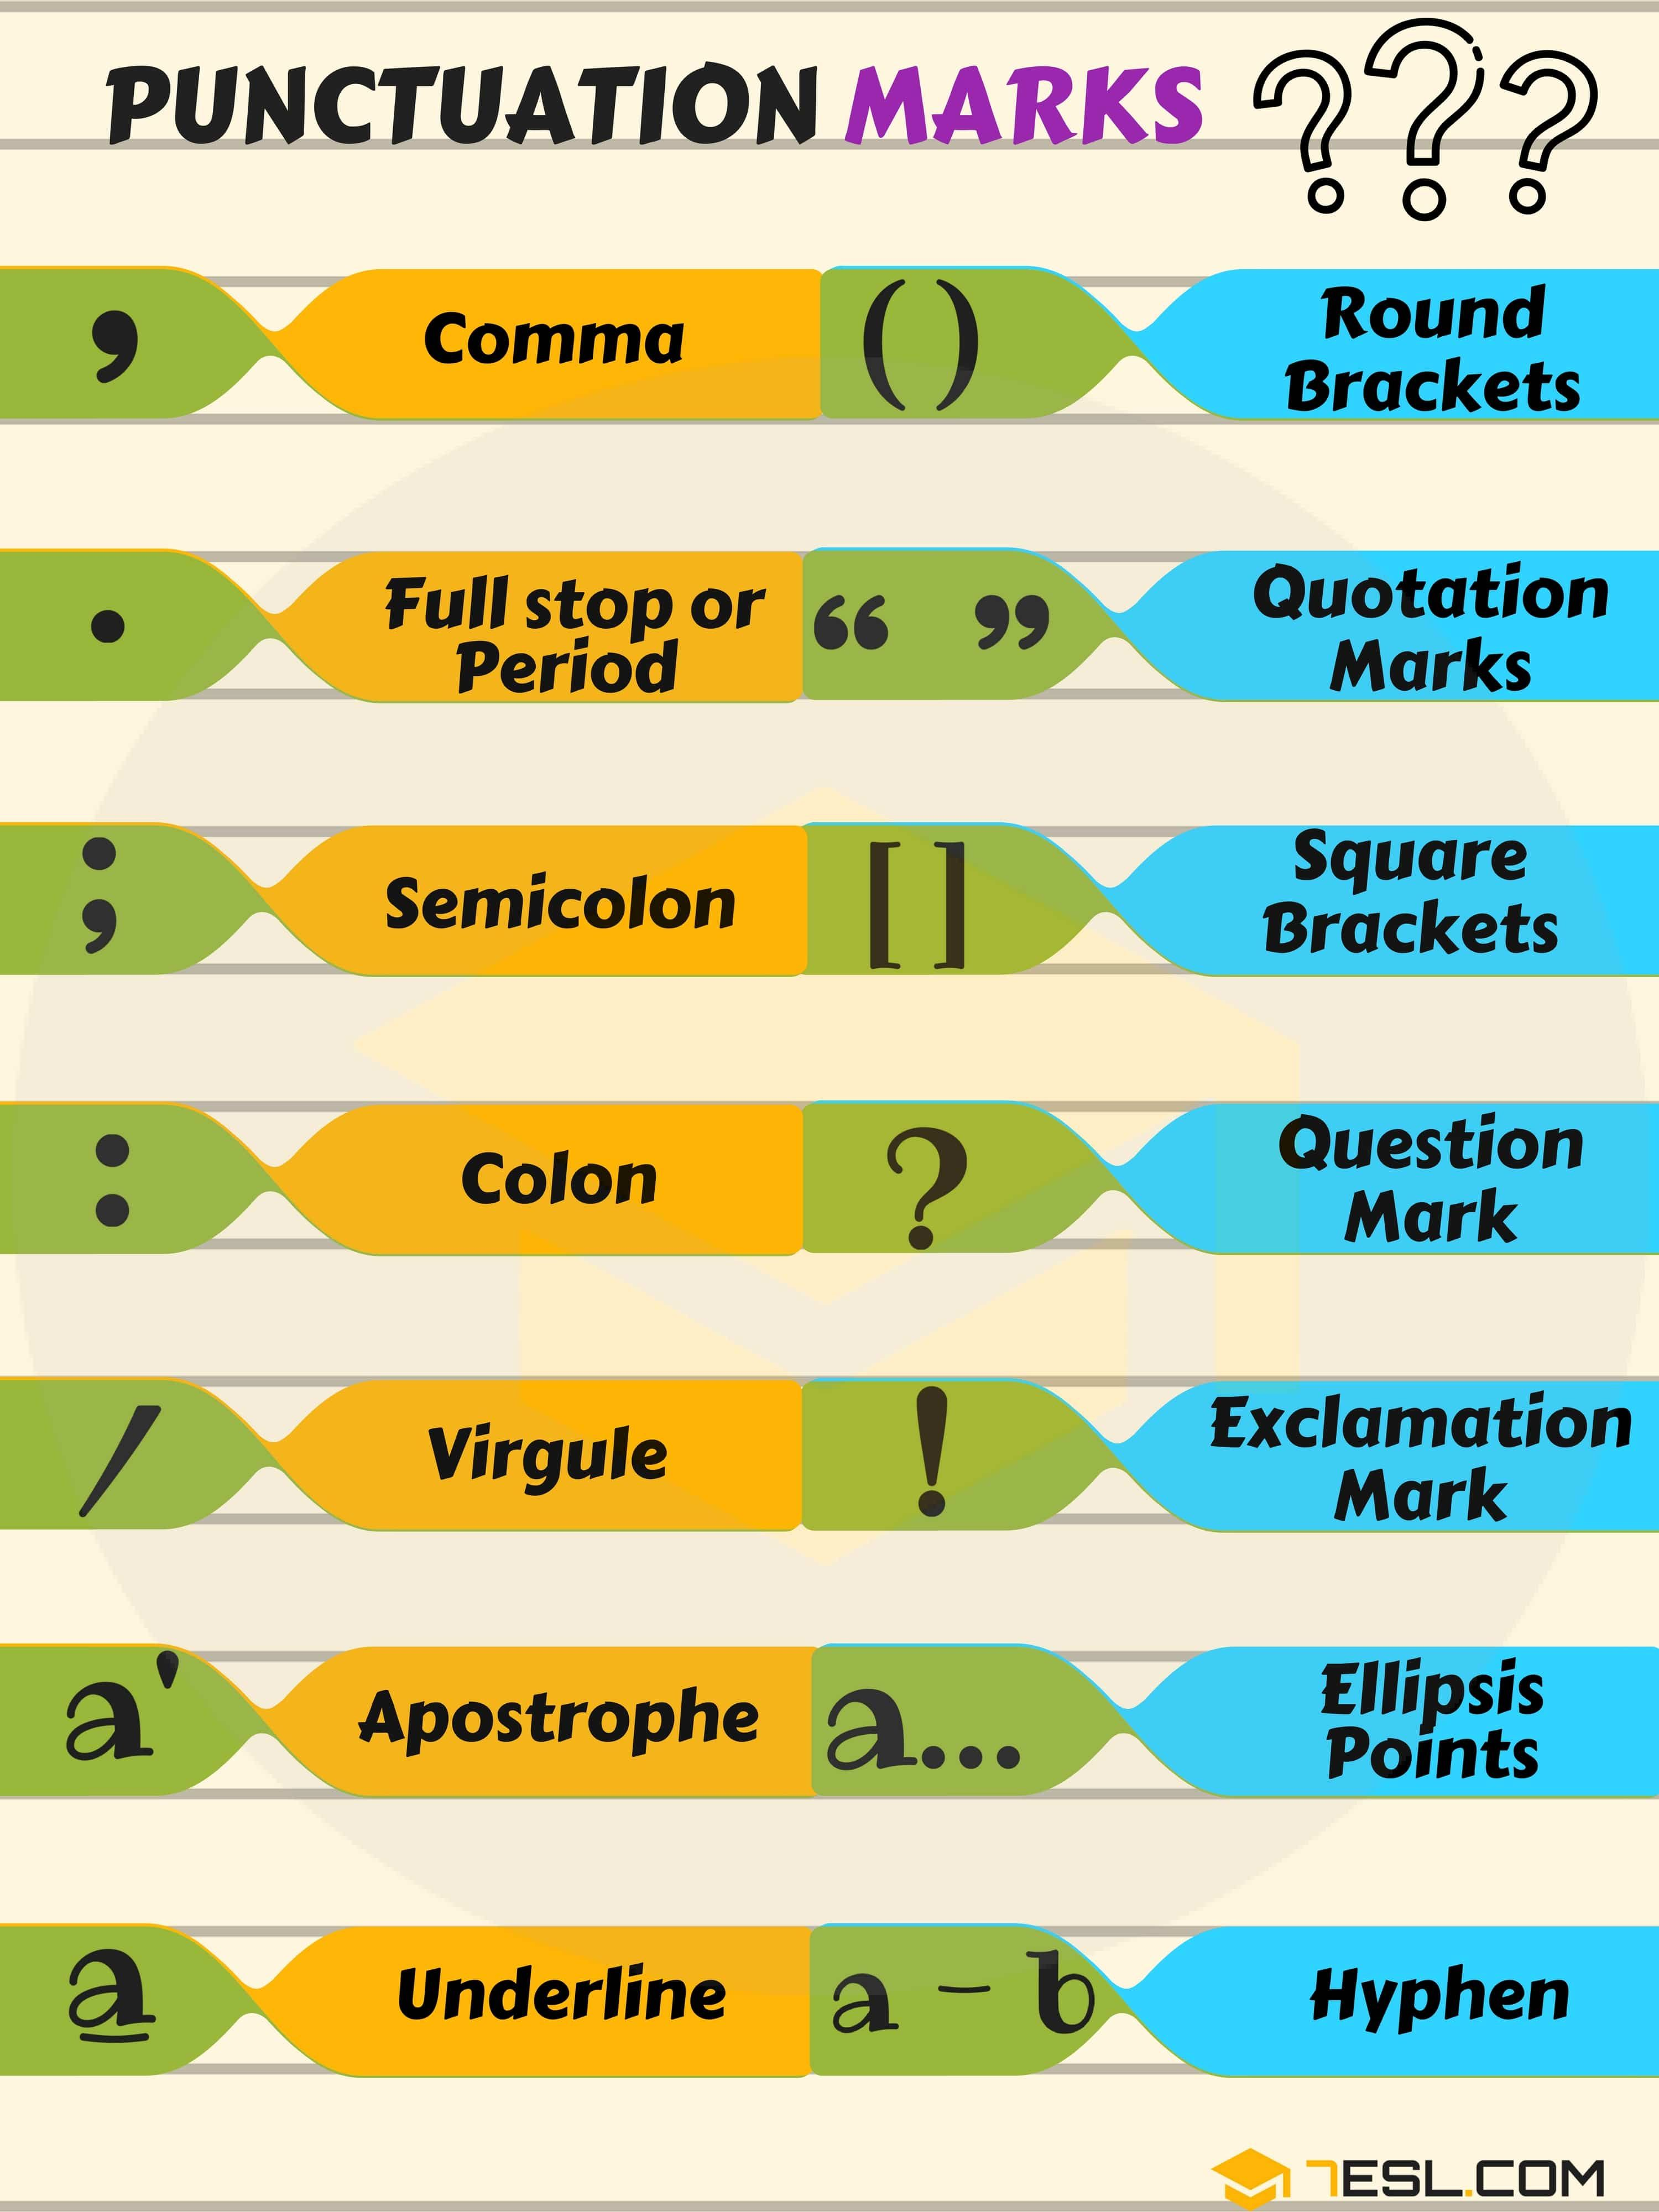 Punctuation Marks Names Rules And Useful Examples 7esl Learn English Words English Grammar Punctuation Marks